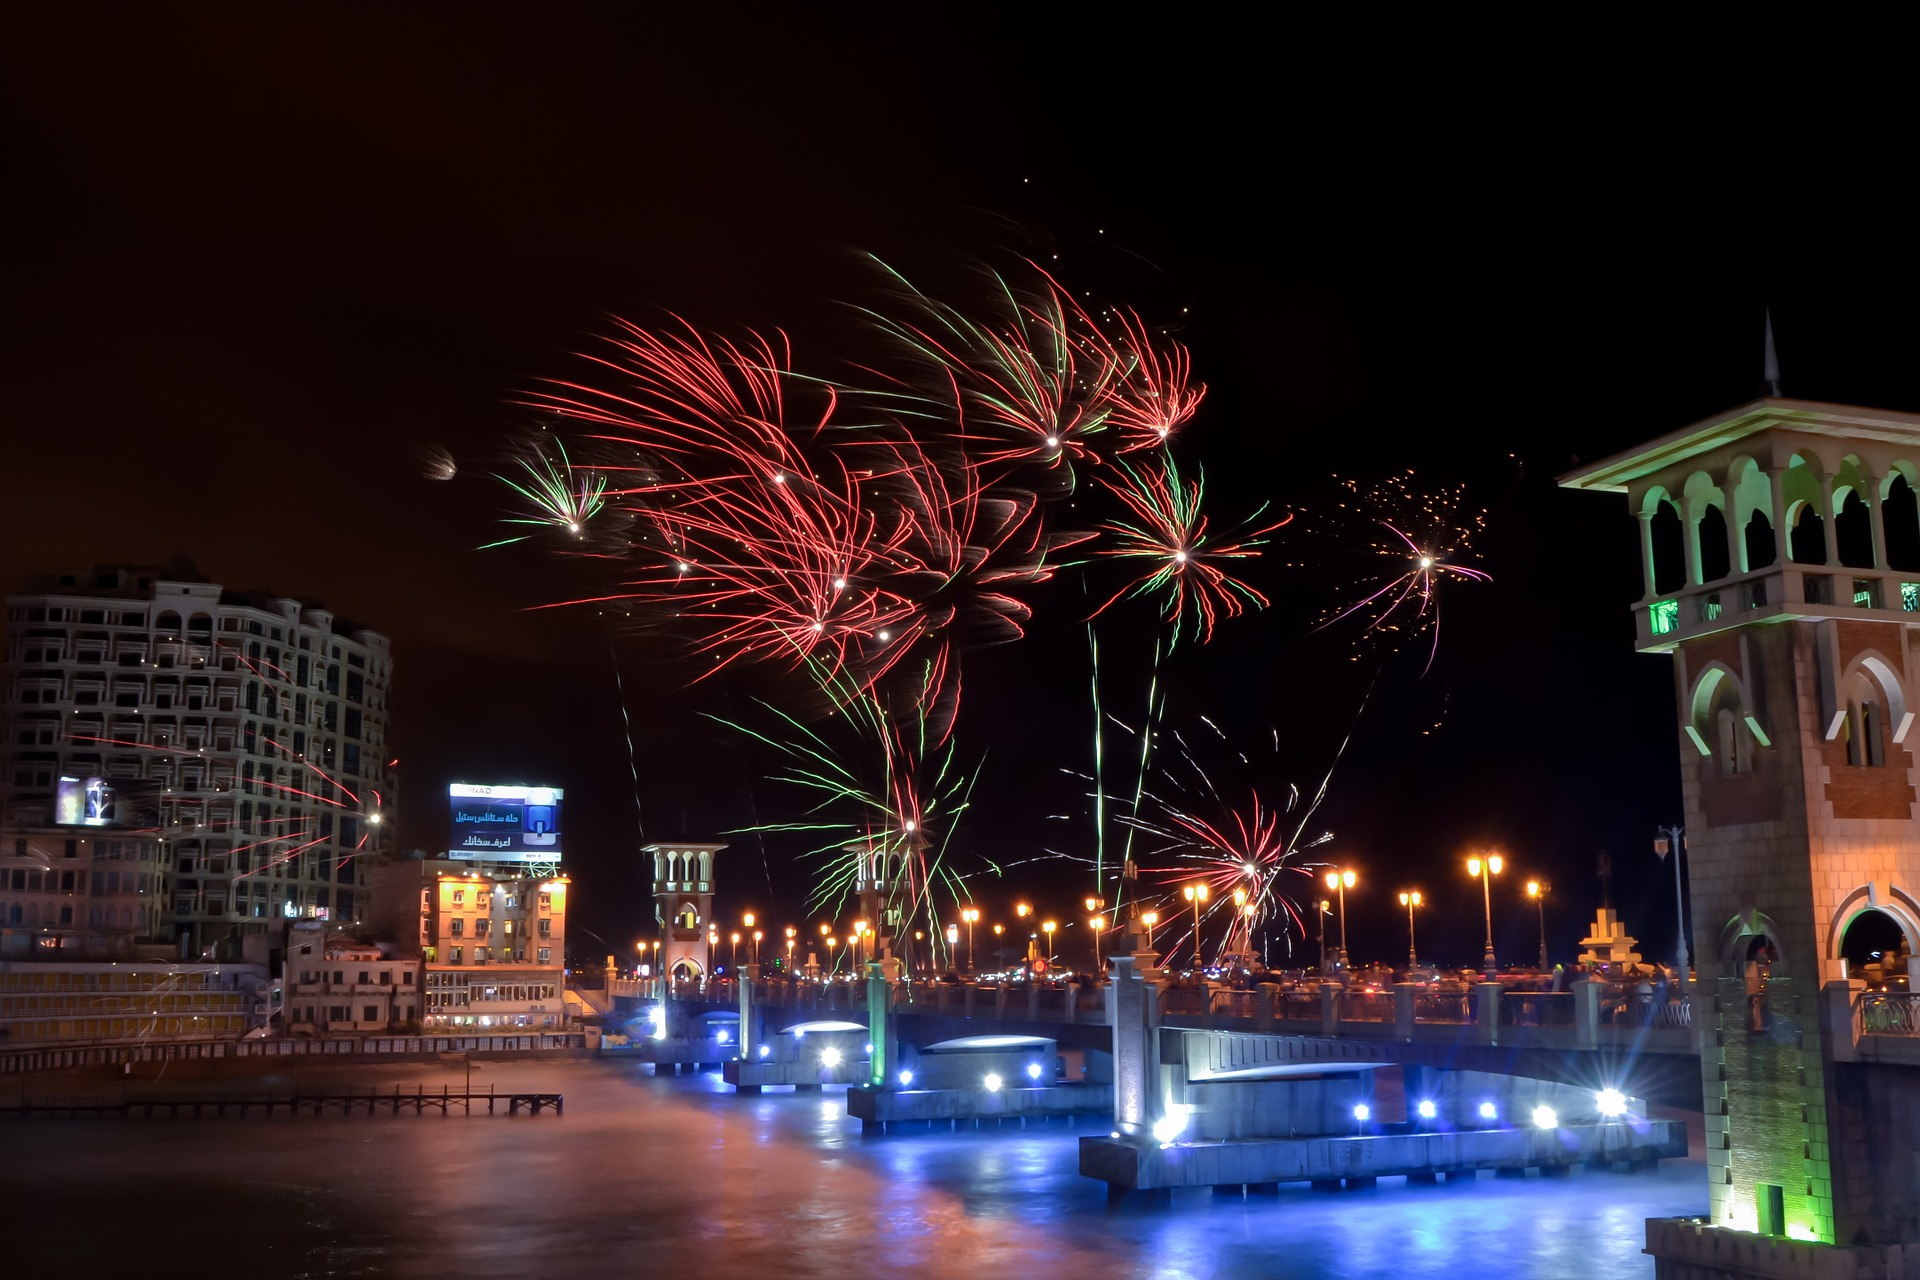 Fireworks over Stanley Bridge, Alexandria, Egypt